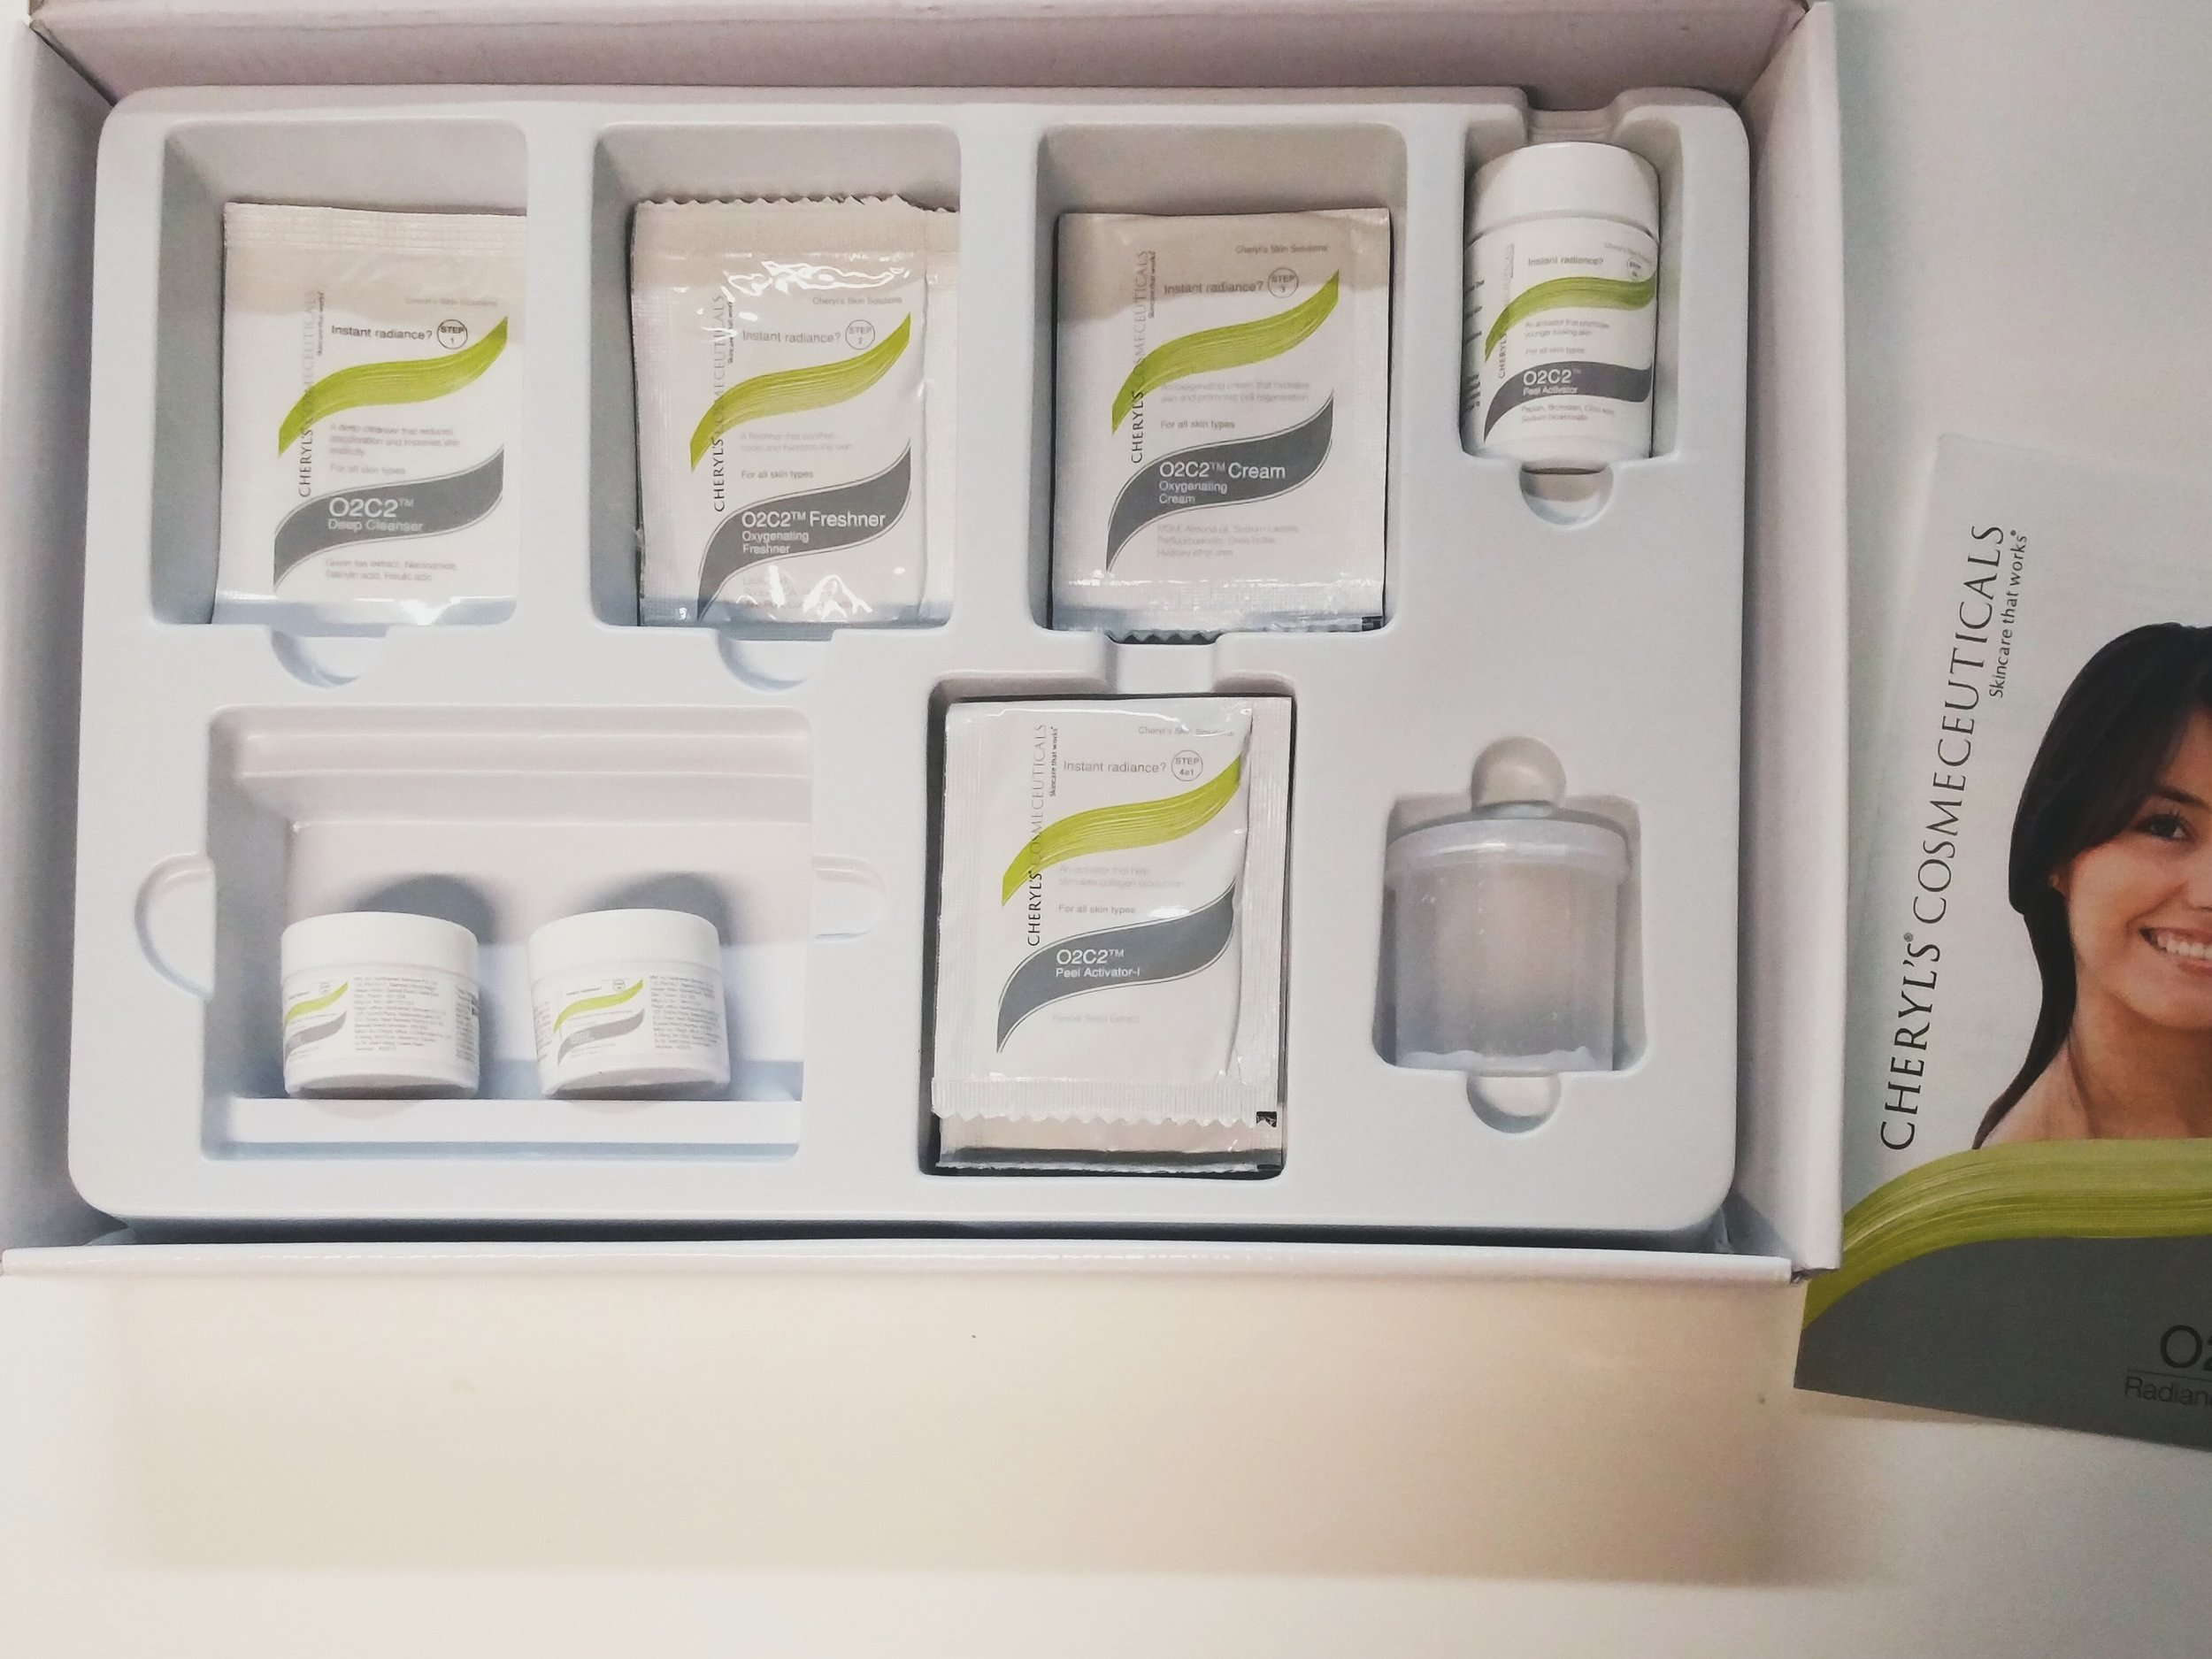 The-Chic-Armoire-by-Nidhi-Kunder-Cheryls-Cosmeceuticals-1c